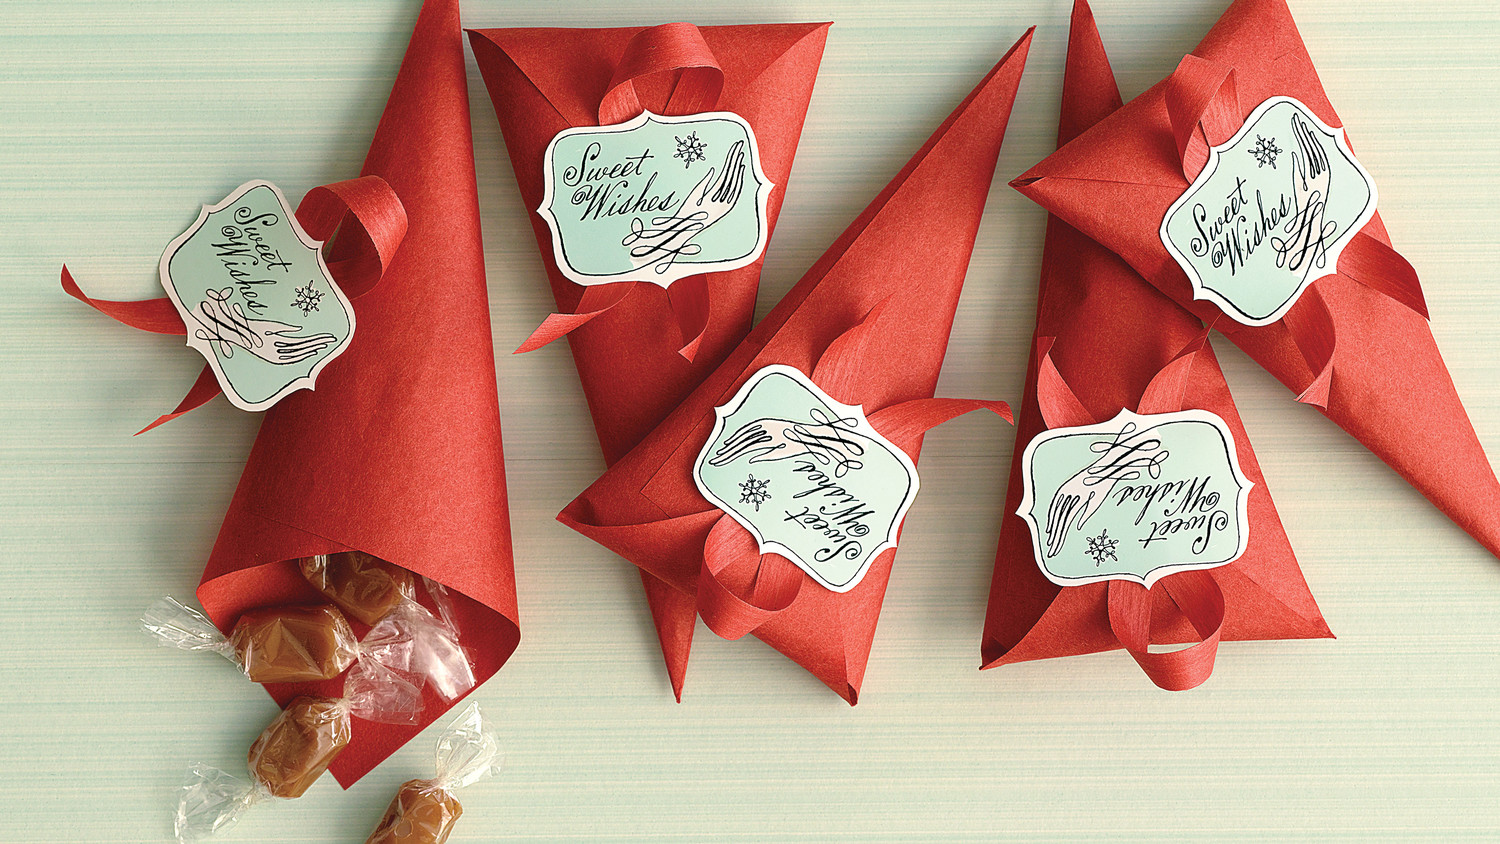 Martha Stewart Wedding Gift Ideas: Gingerbread Caramel Cones